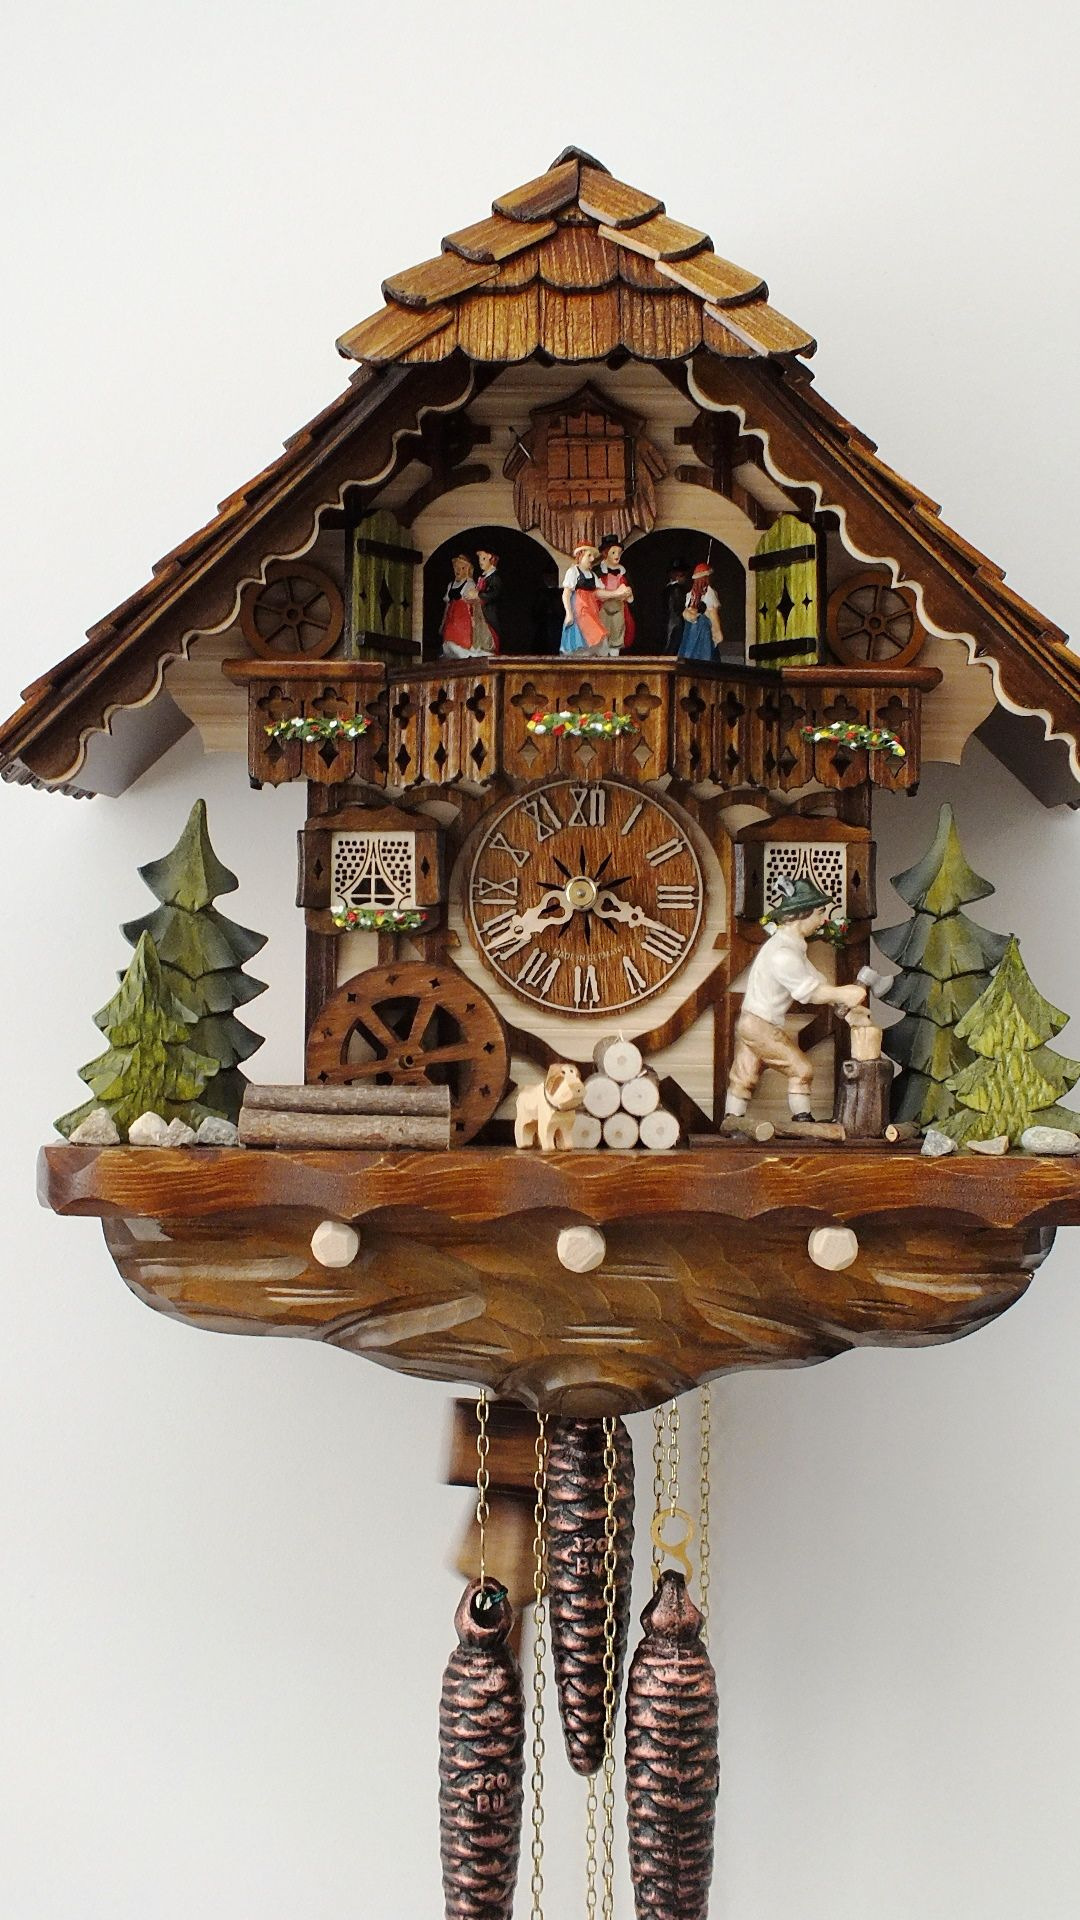 best images about cuckoo clocks street clocks 17 best images about cuckoo clocks street clocks vintage clocks black forest and mantle clock